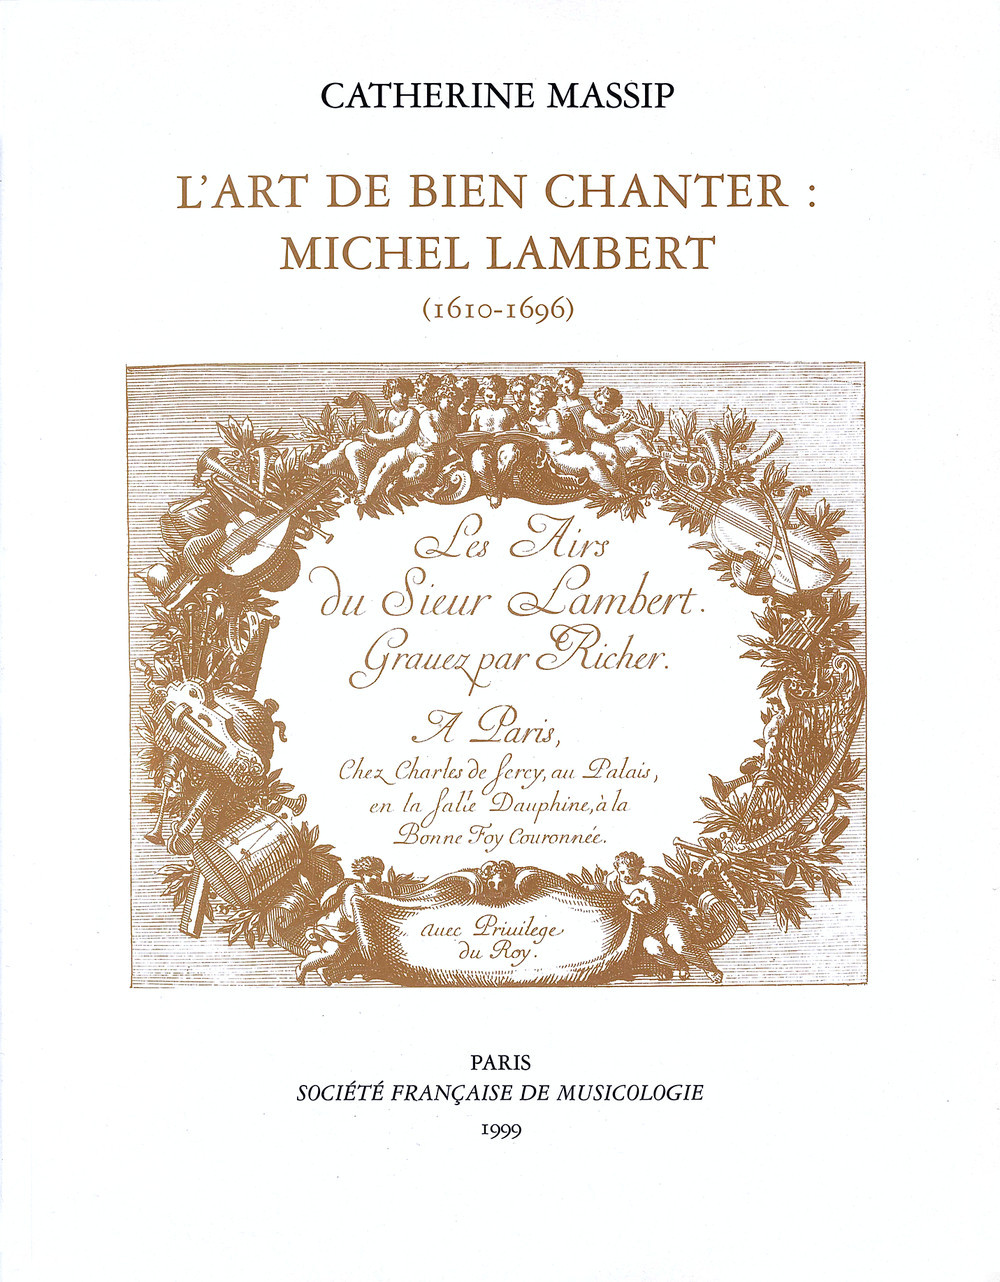 L ART DE BIEN CHANTER : MICHEL LAMBERT (1610-1696)